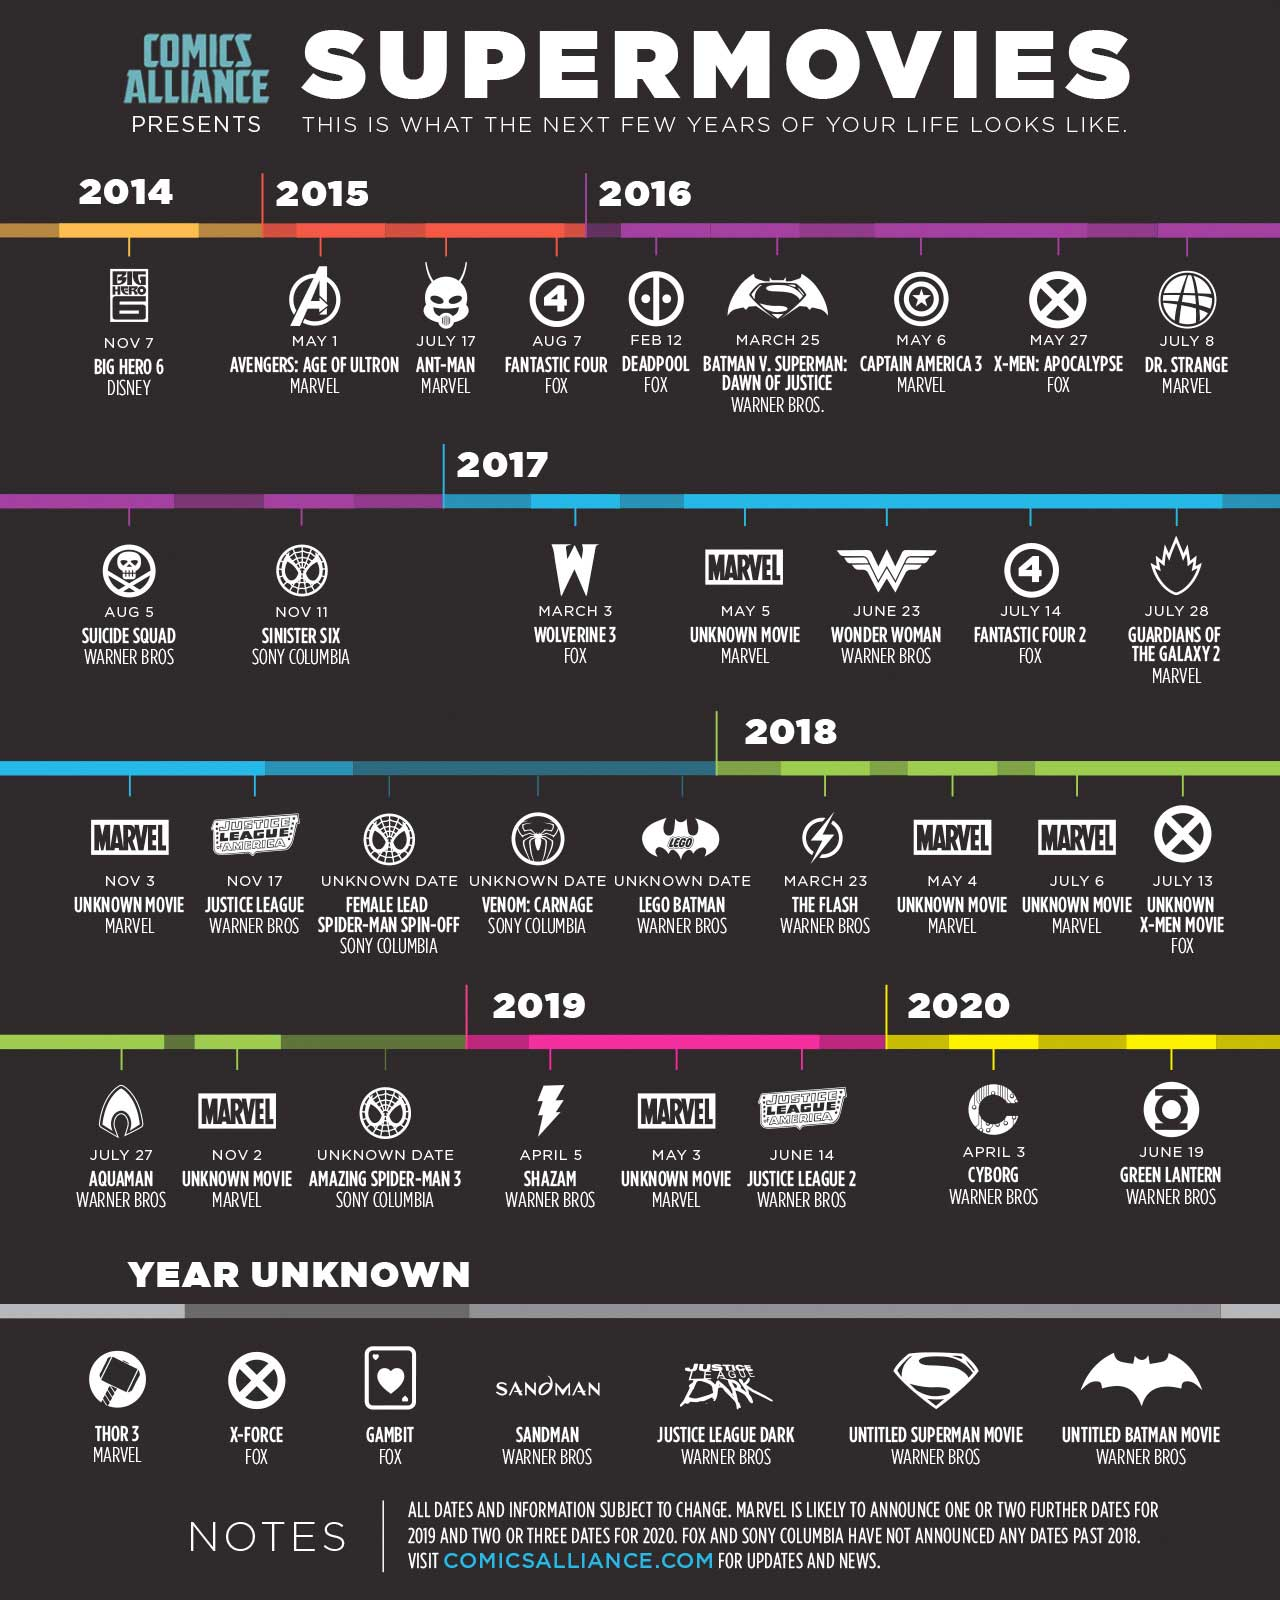 Comicbookmovies through2020